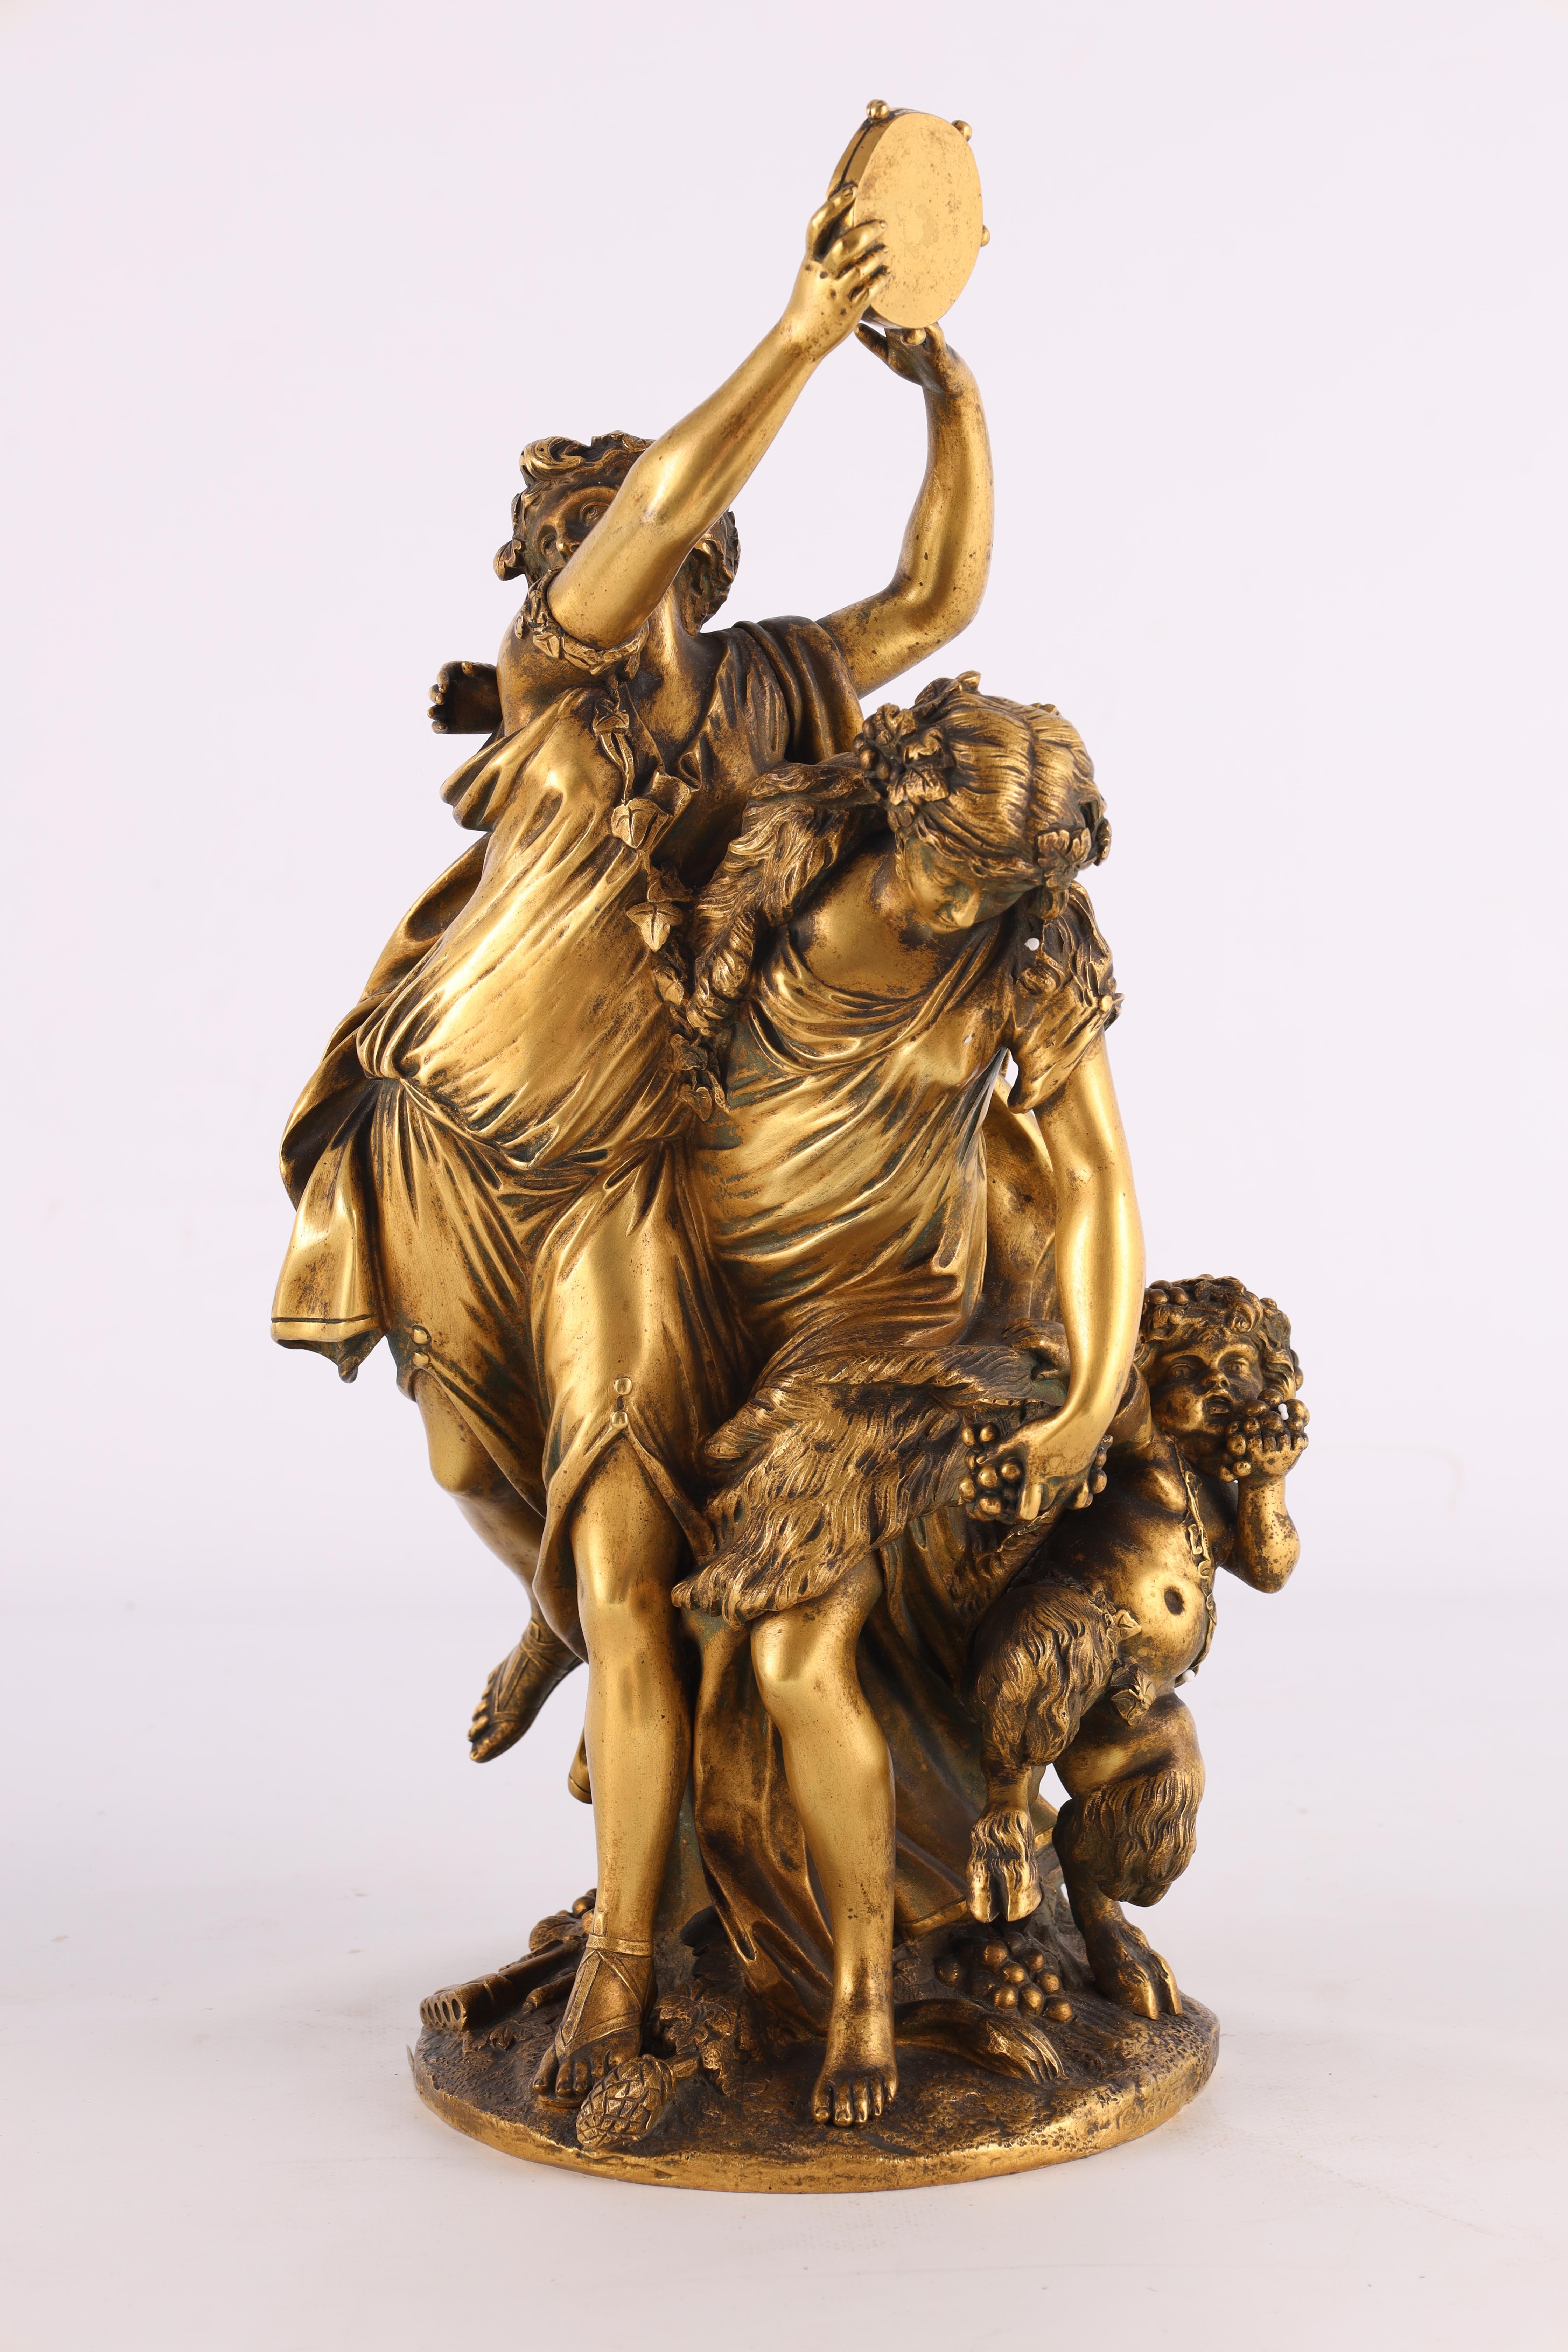 AFTER MICHAEL CLAUDE CLODION A LATE 19TH CENTURY FRENCH GILT BRONZE SCULPTURE titled 'Bacchanalia' - Image 2 of 10